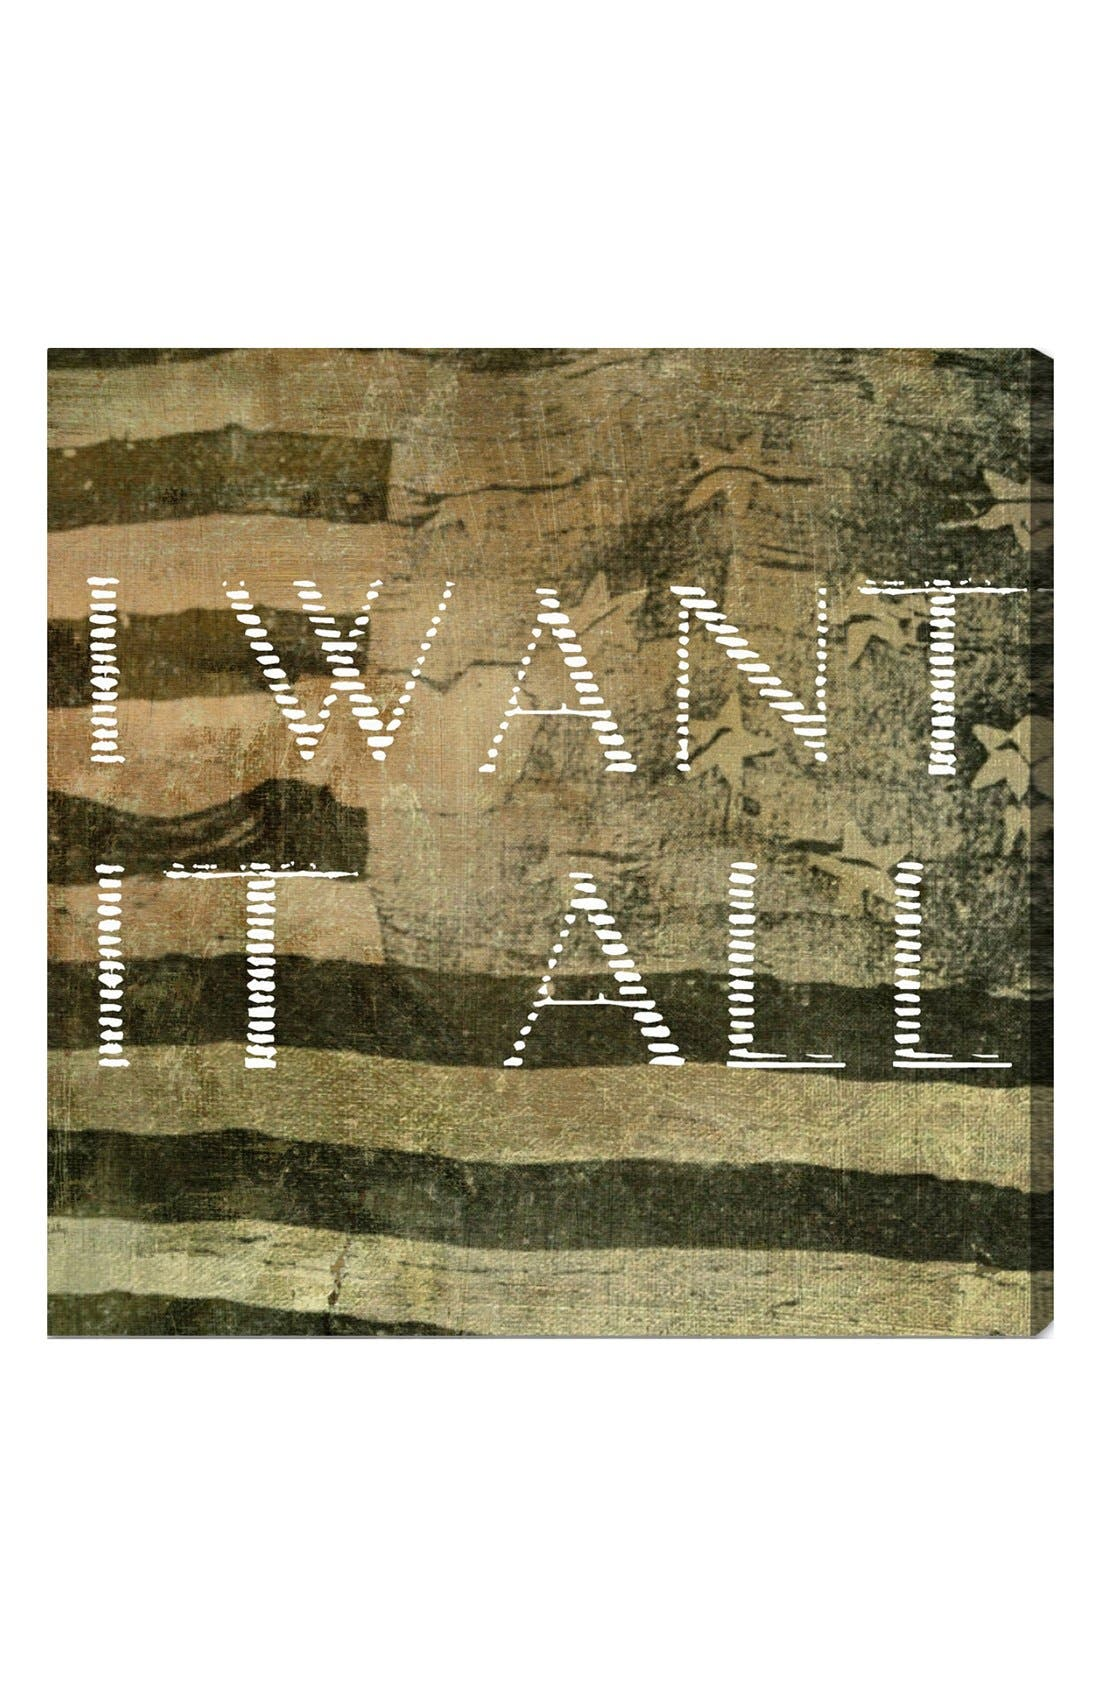 Alternate Image 1 Selected - Oliver Gal 'I Want It All' Wall Art